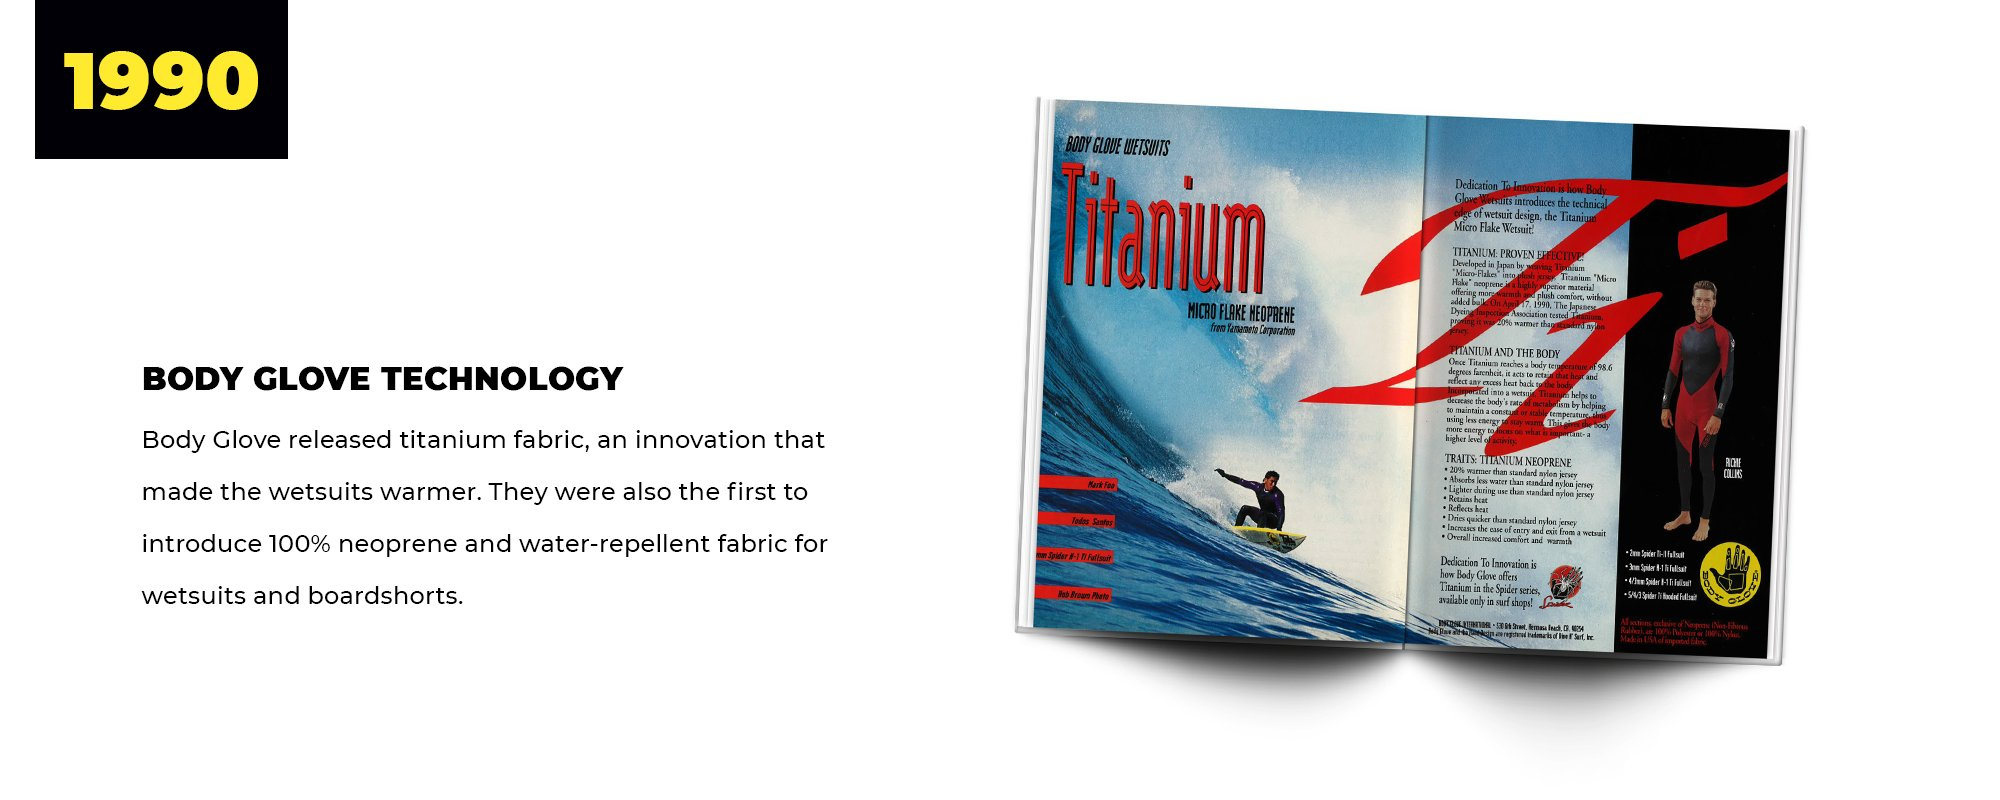 1990 | Body Glove Technology | Body Glove released titanium fabric, an innovation that made the wetsuits warmer. They were also the first to introduce 100% neoprene and water-repellent fabric for wetsuits and boardshorts.